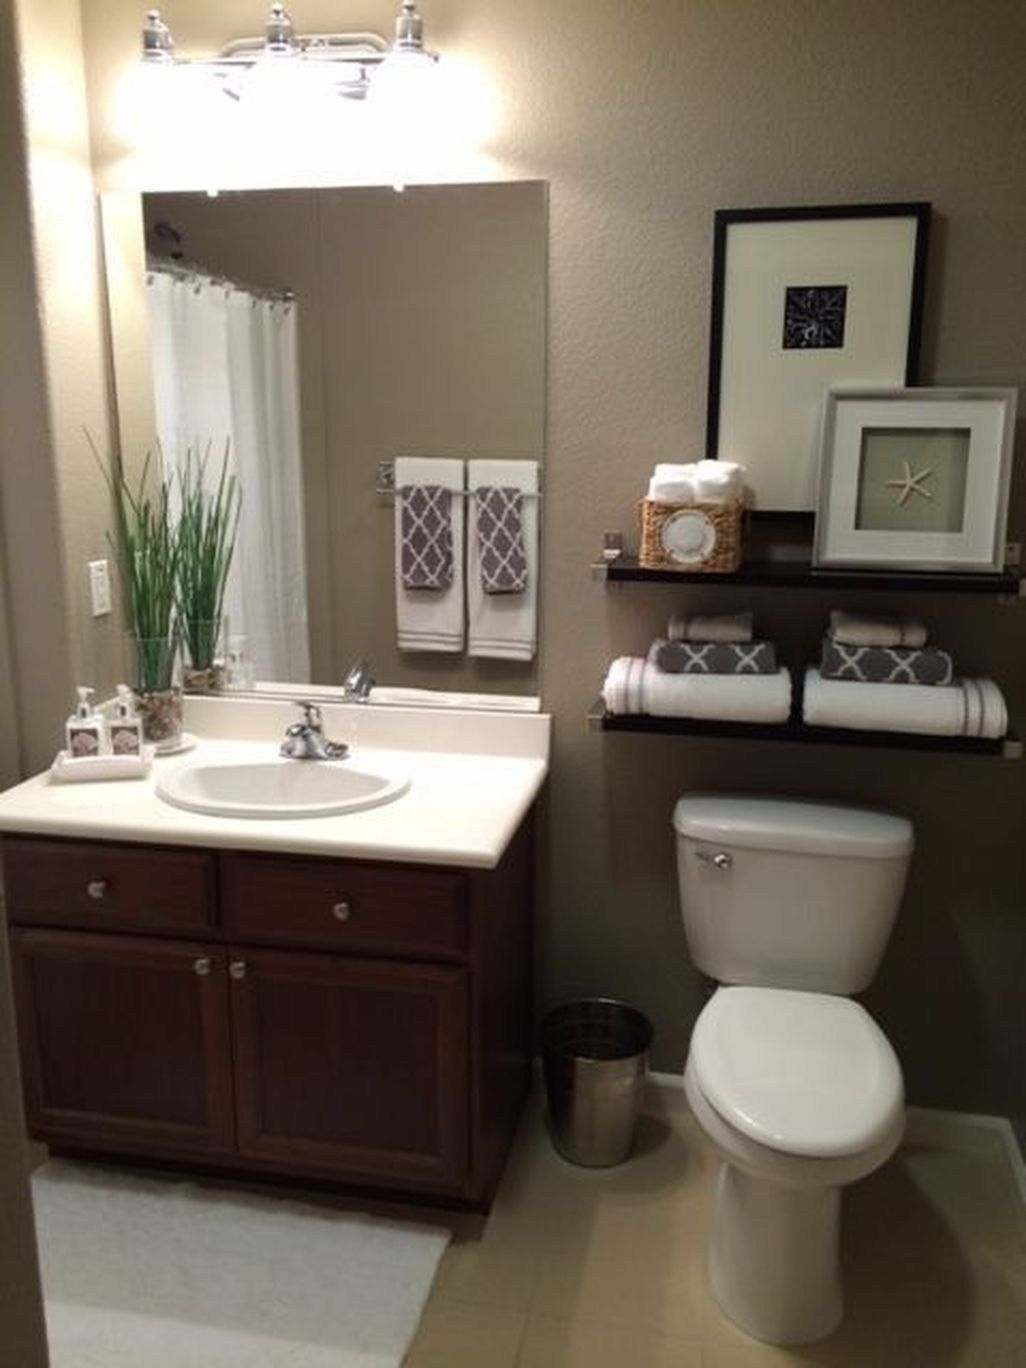 42 Accessories Bathroom Decorating Ideas 47 Holistic Hospitality Make Your Guests Feel At Home With Good Guest 2